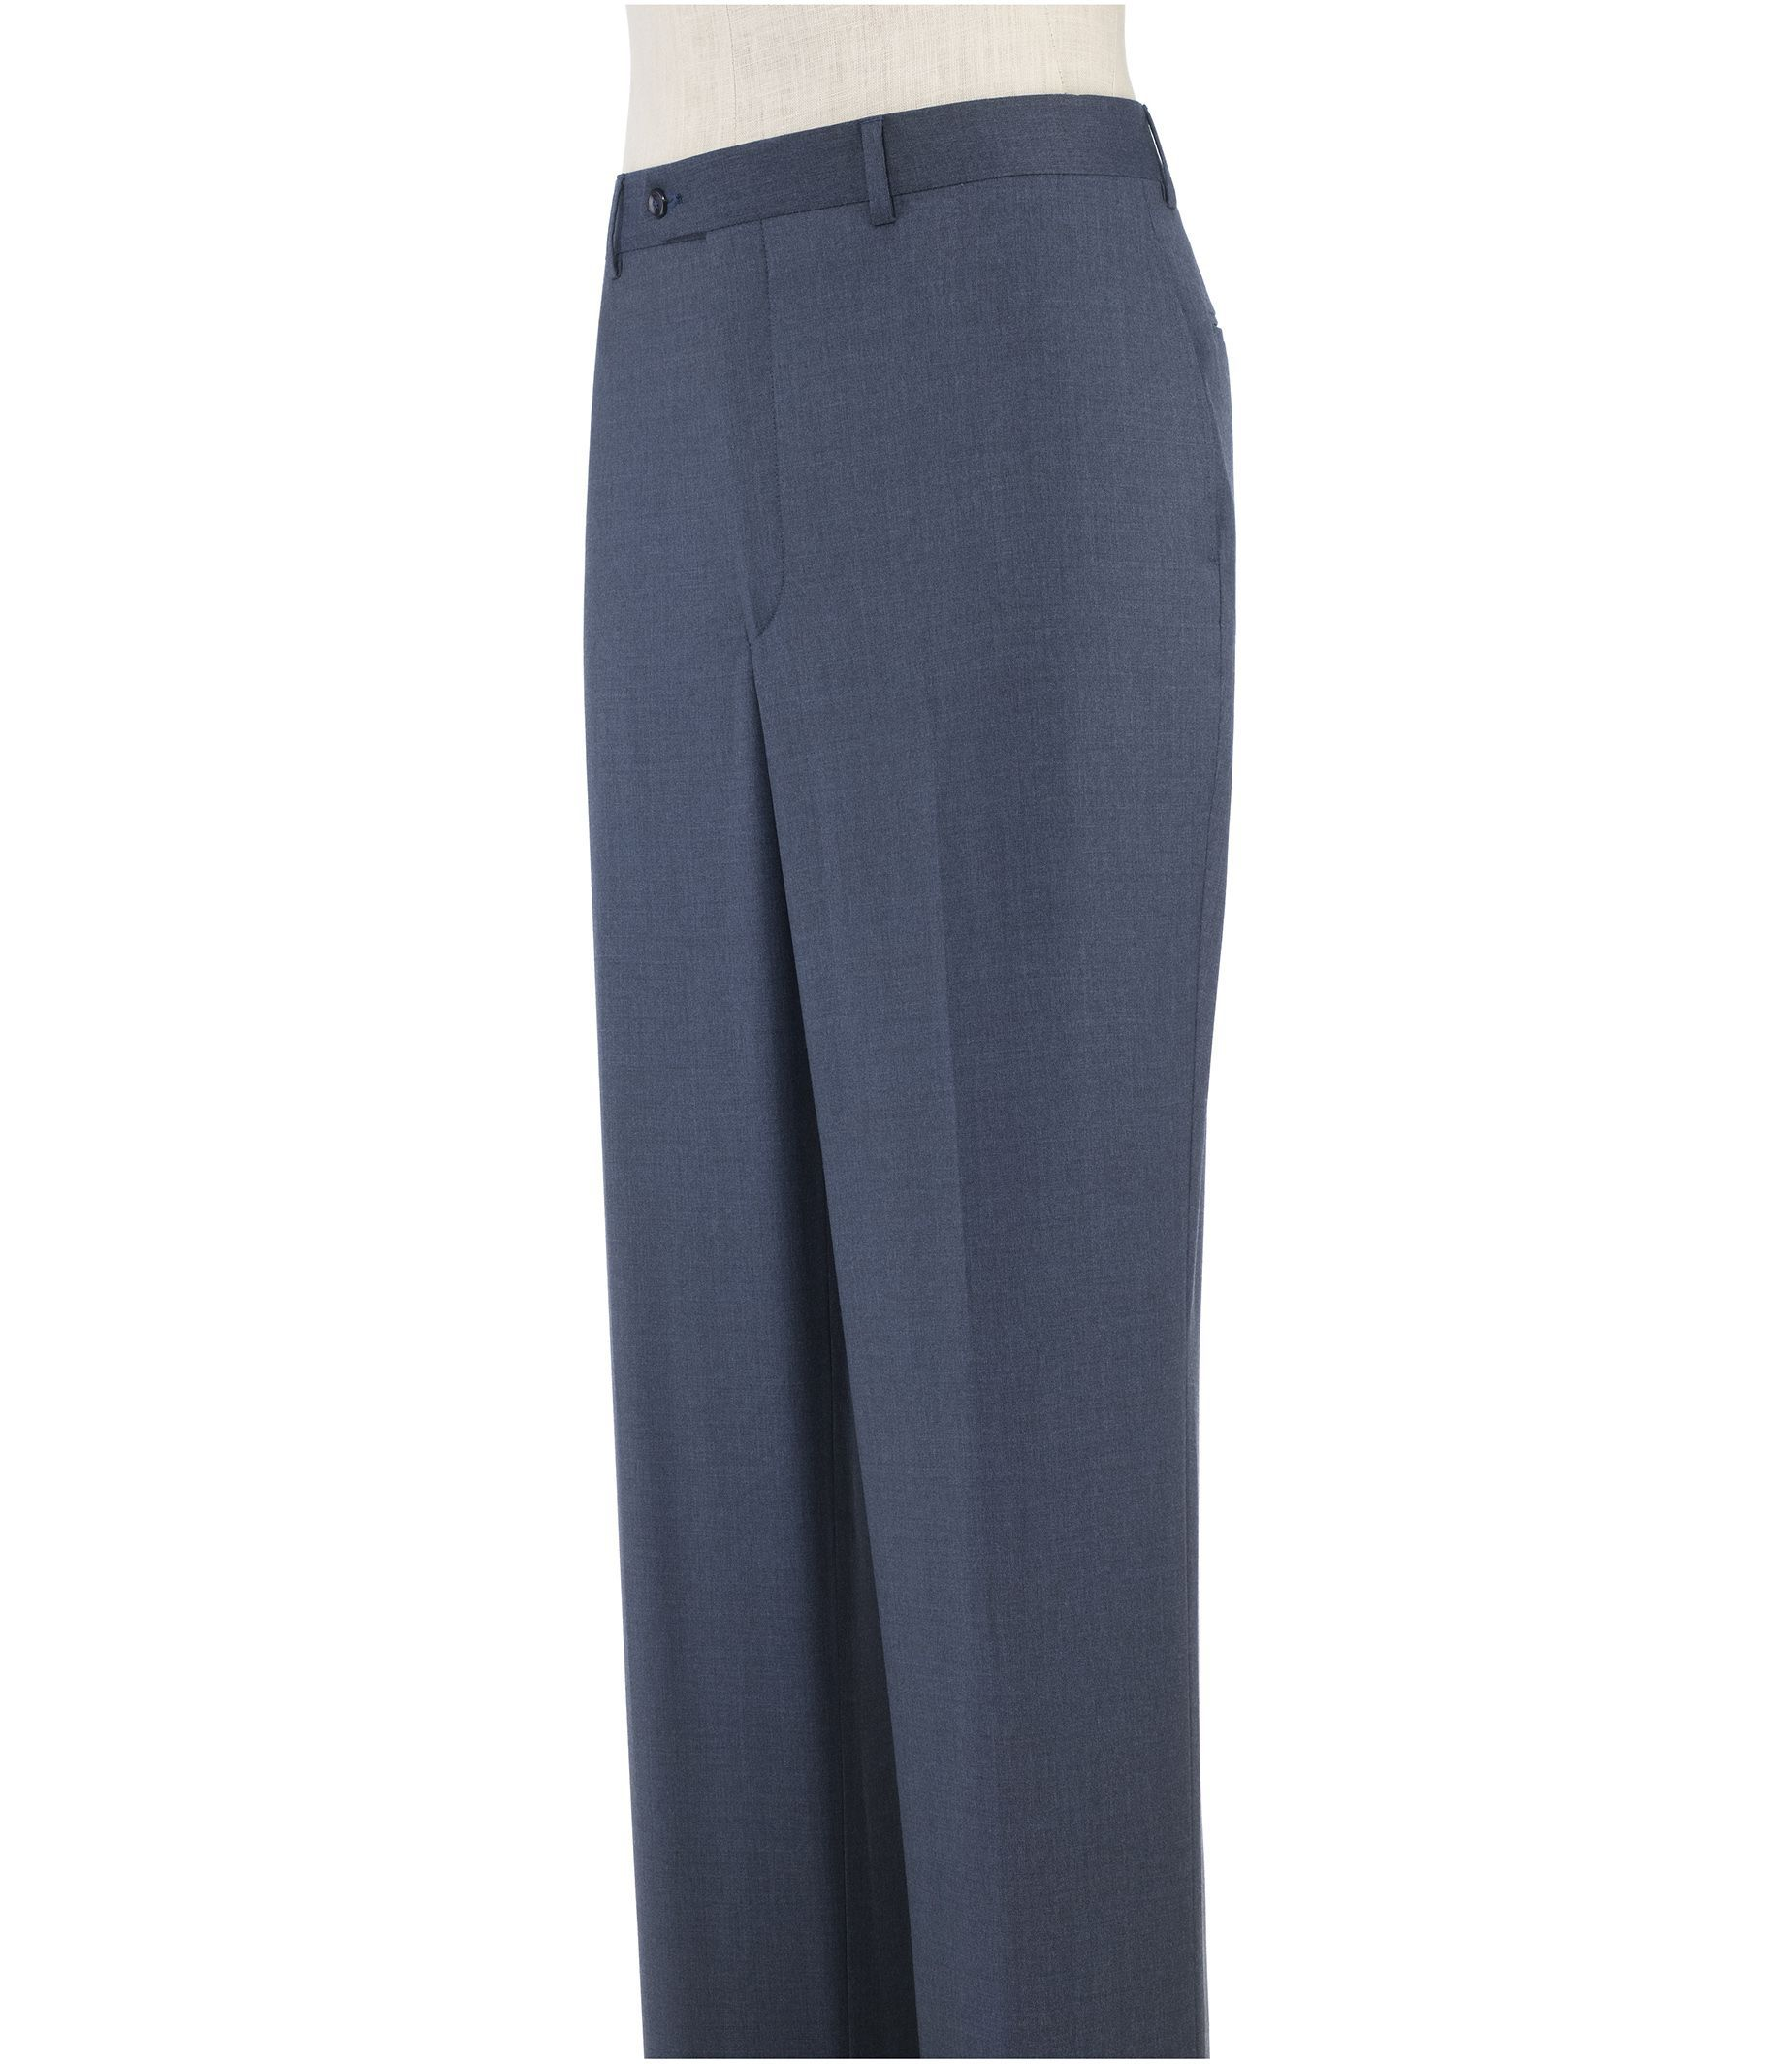 6f352775bac5 Signature Collection Traditional Fit Pleated Front Dress Pants CLEARANCE   2J90